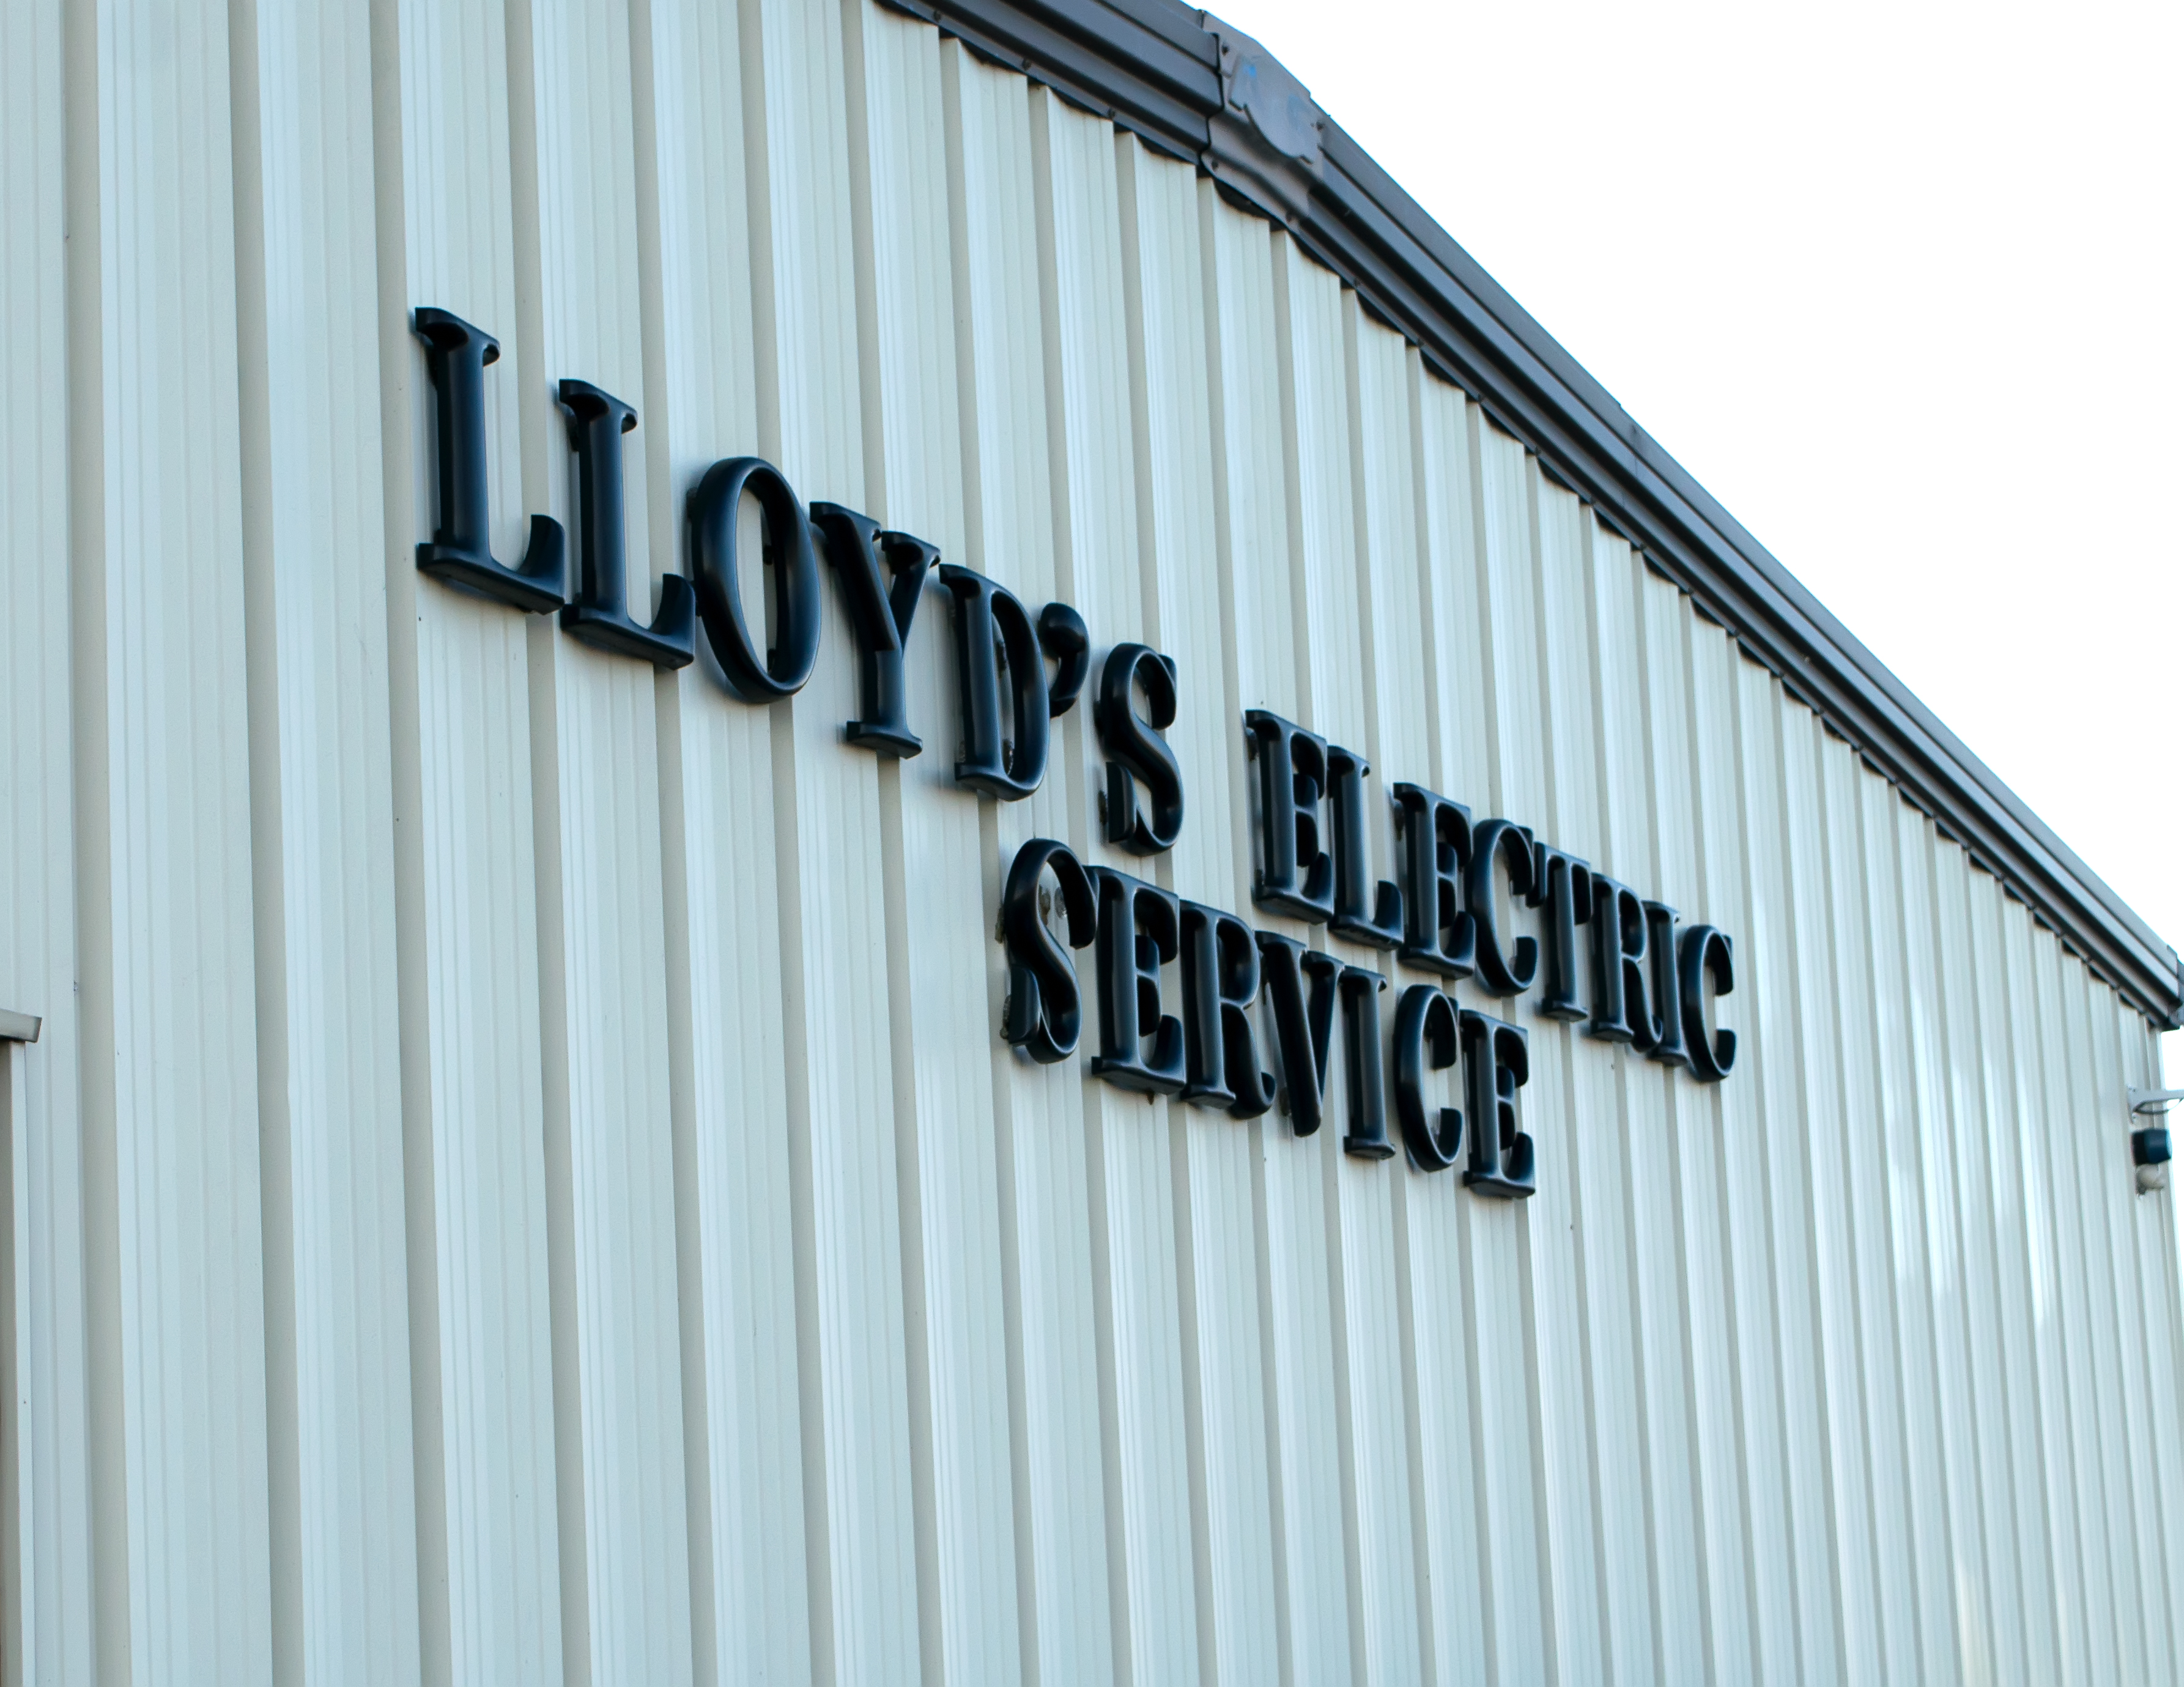 Licensed Knoxville Electrician - Image of Lloyd's Electric Service sign on building exterior